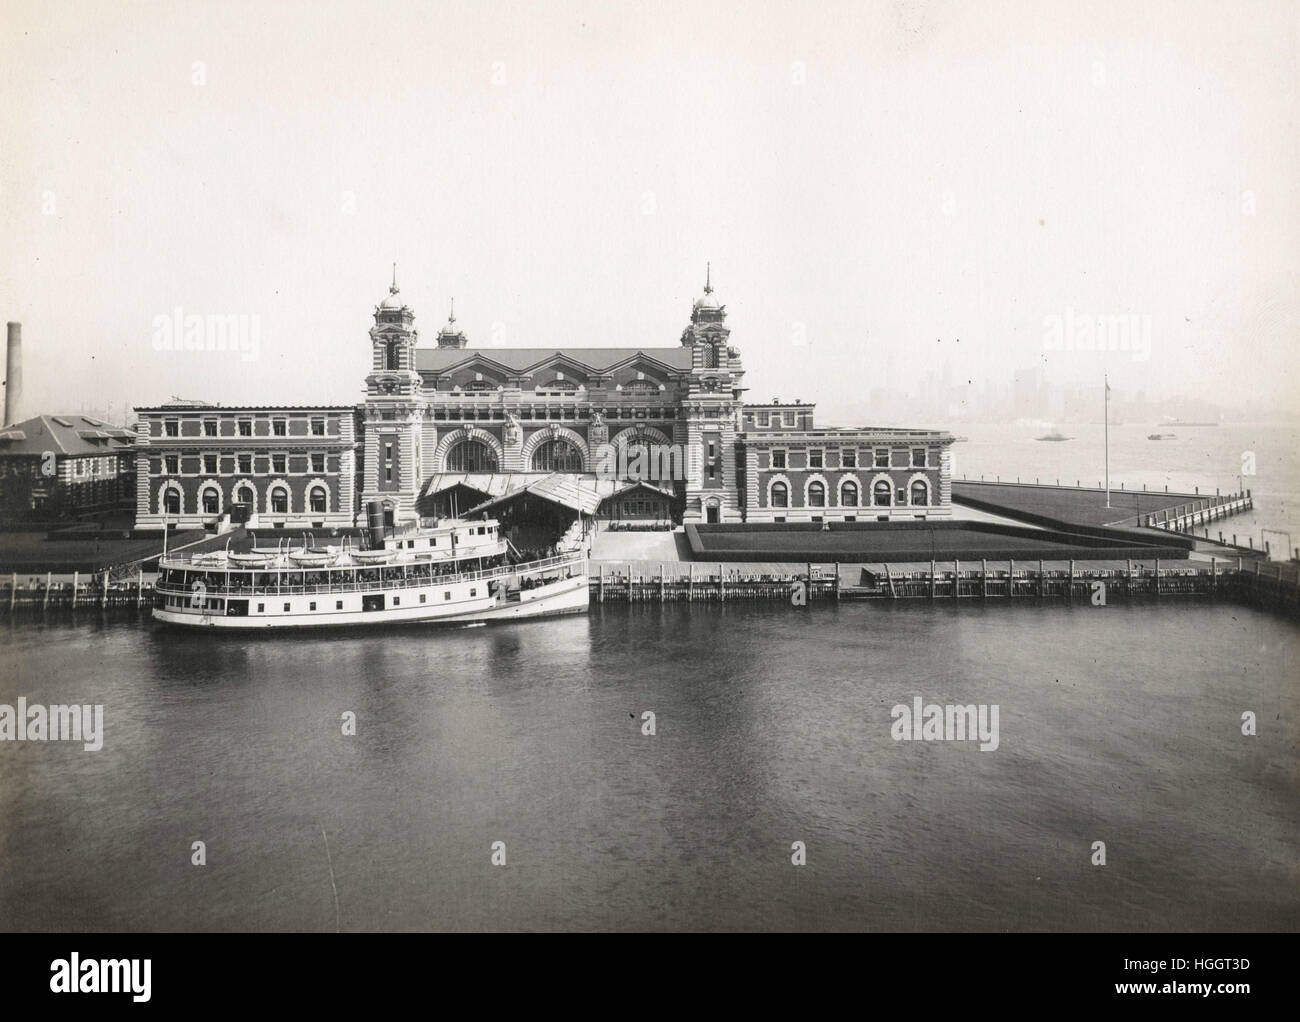 An excellent view of the front facade of the Immigration Station; a boat is docked in front  - Ellis Island Immigration - Stock Image